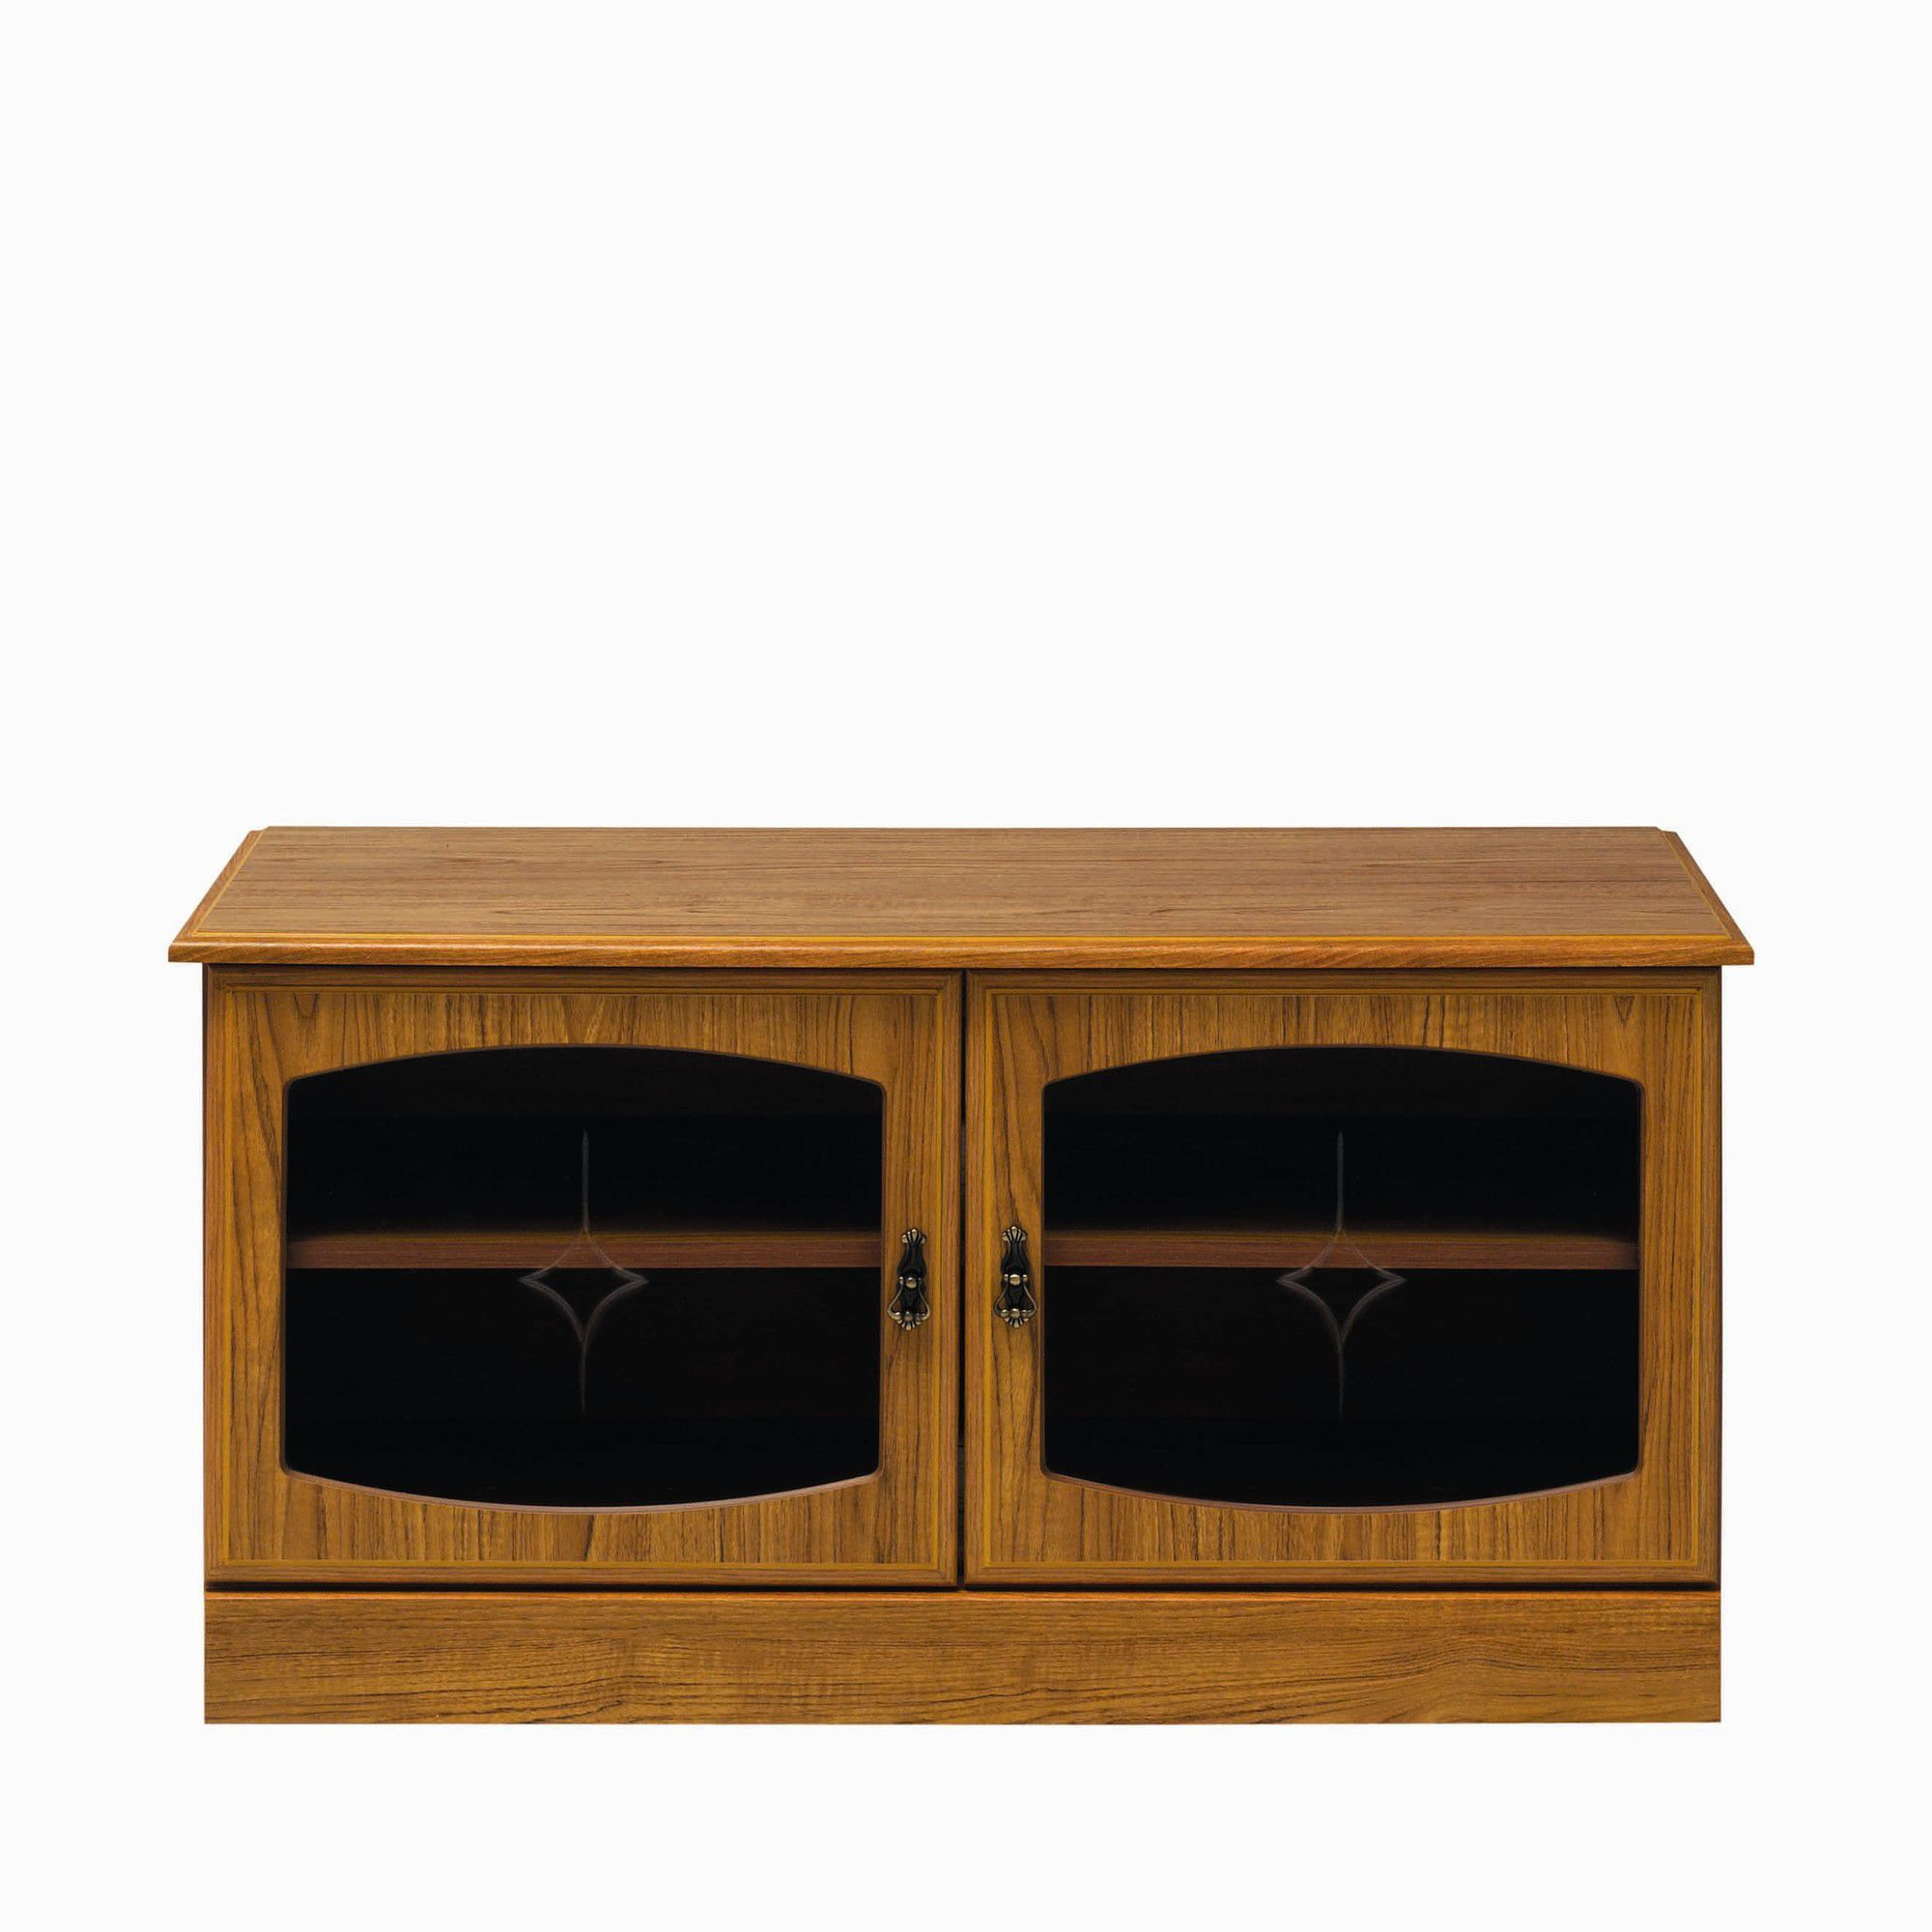 Caxton Tennyson TV Cabinet at Tesco Direct